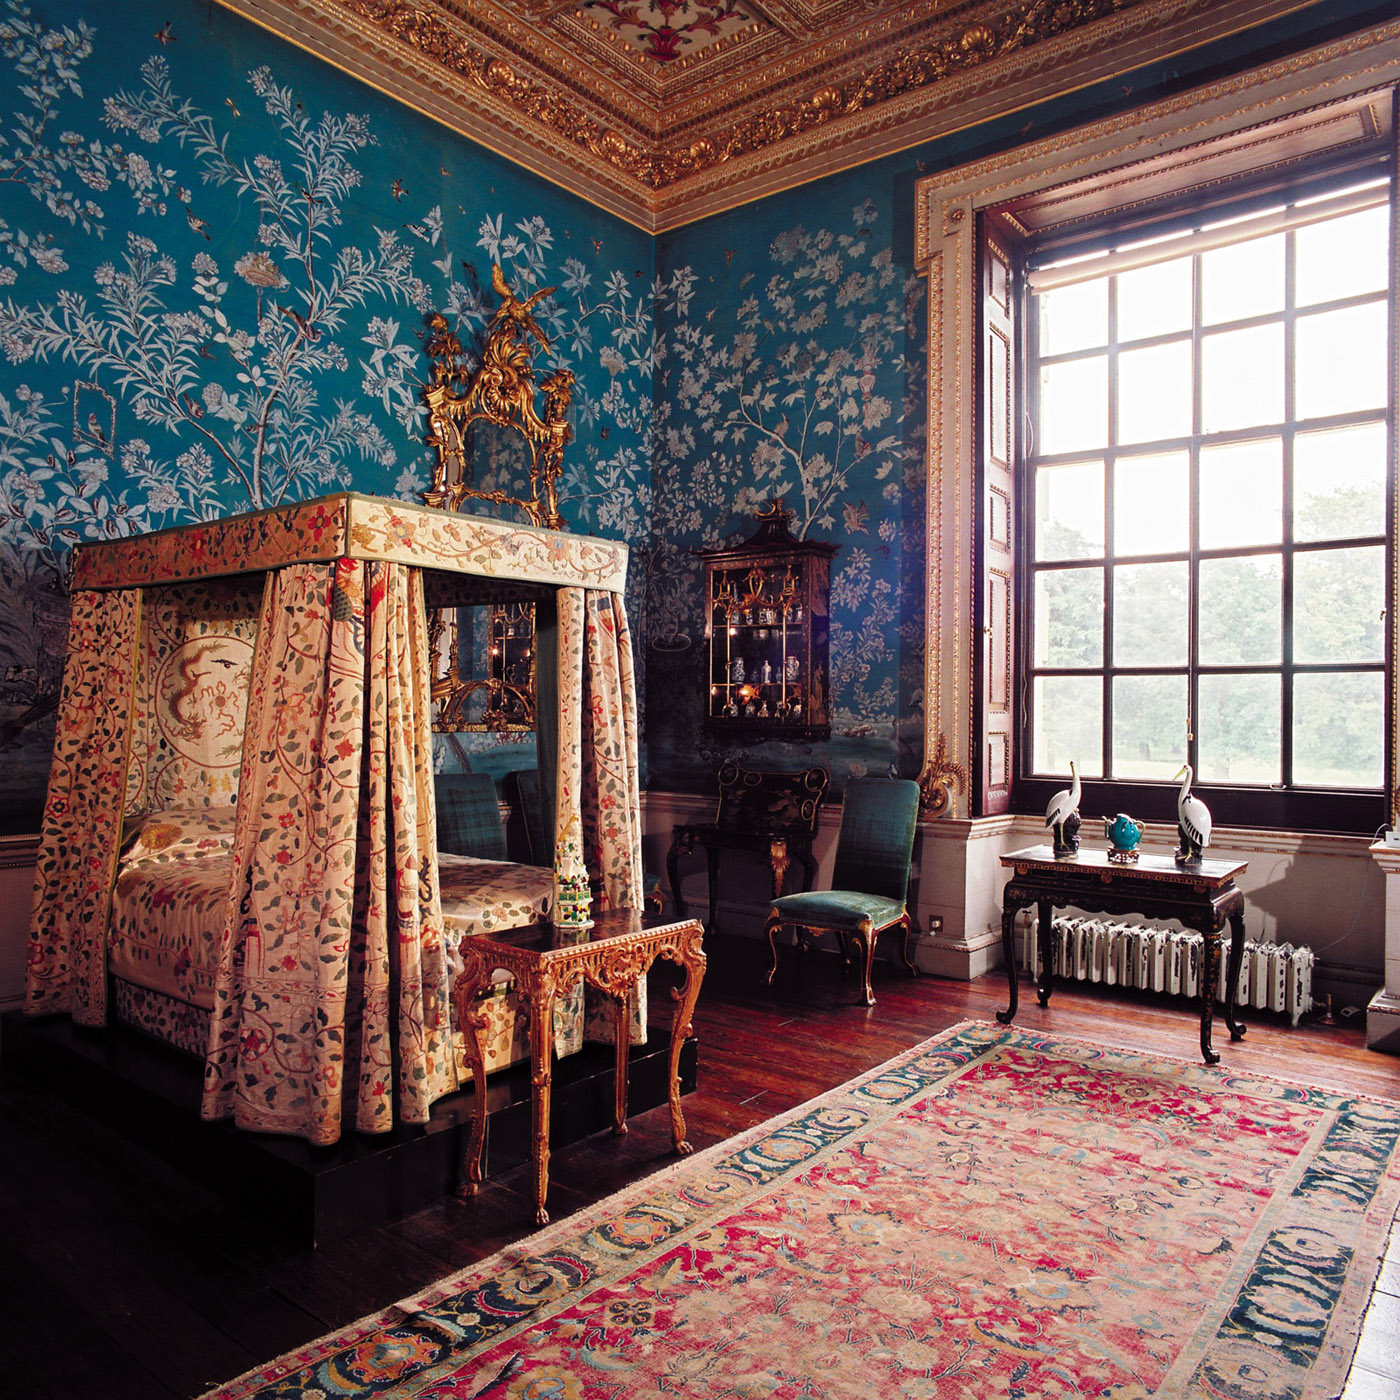 houghton-hall_cabinet-room_photo-credit-nick-mccann_resized